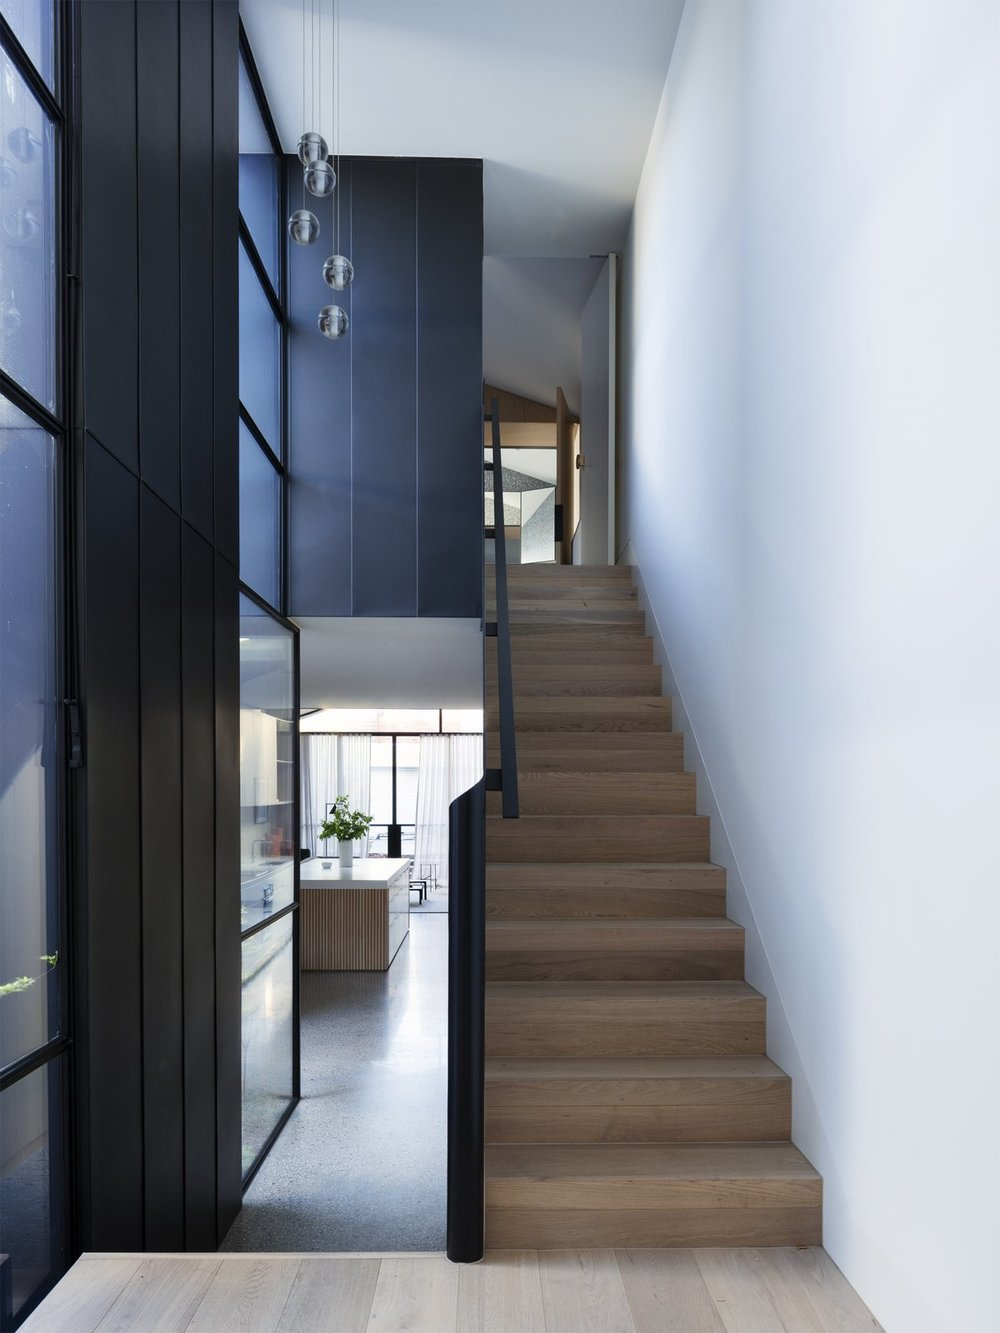 Pandolfini, With His Sense Of Value For Design, Decided To Hold On To The  Antique Victorian House Front Relatively Unchanged, Which Is Commending.